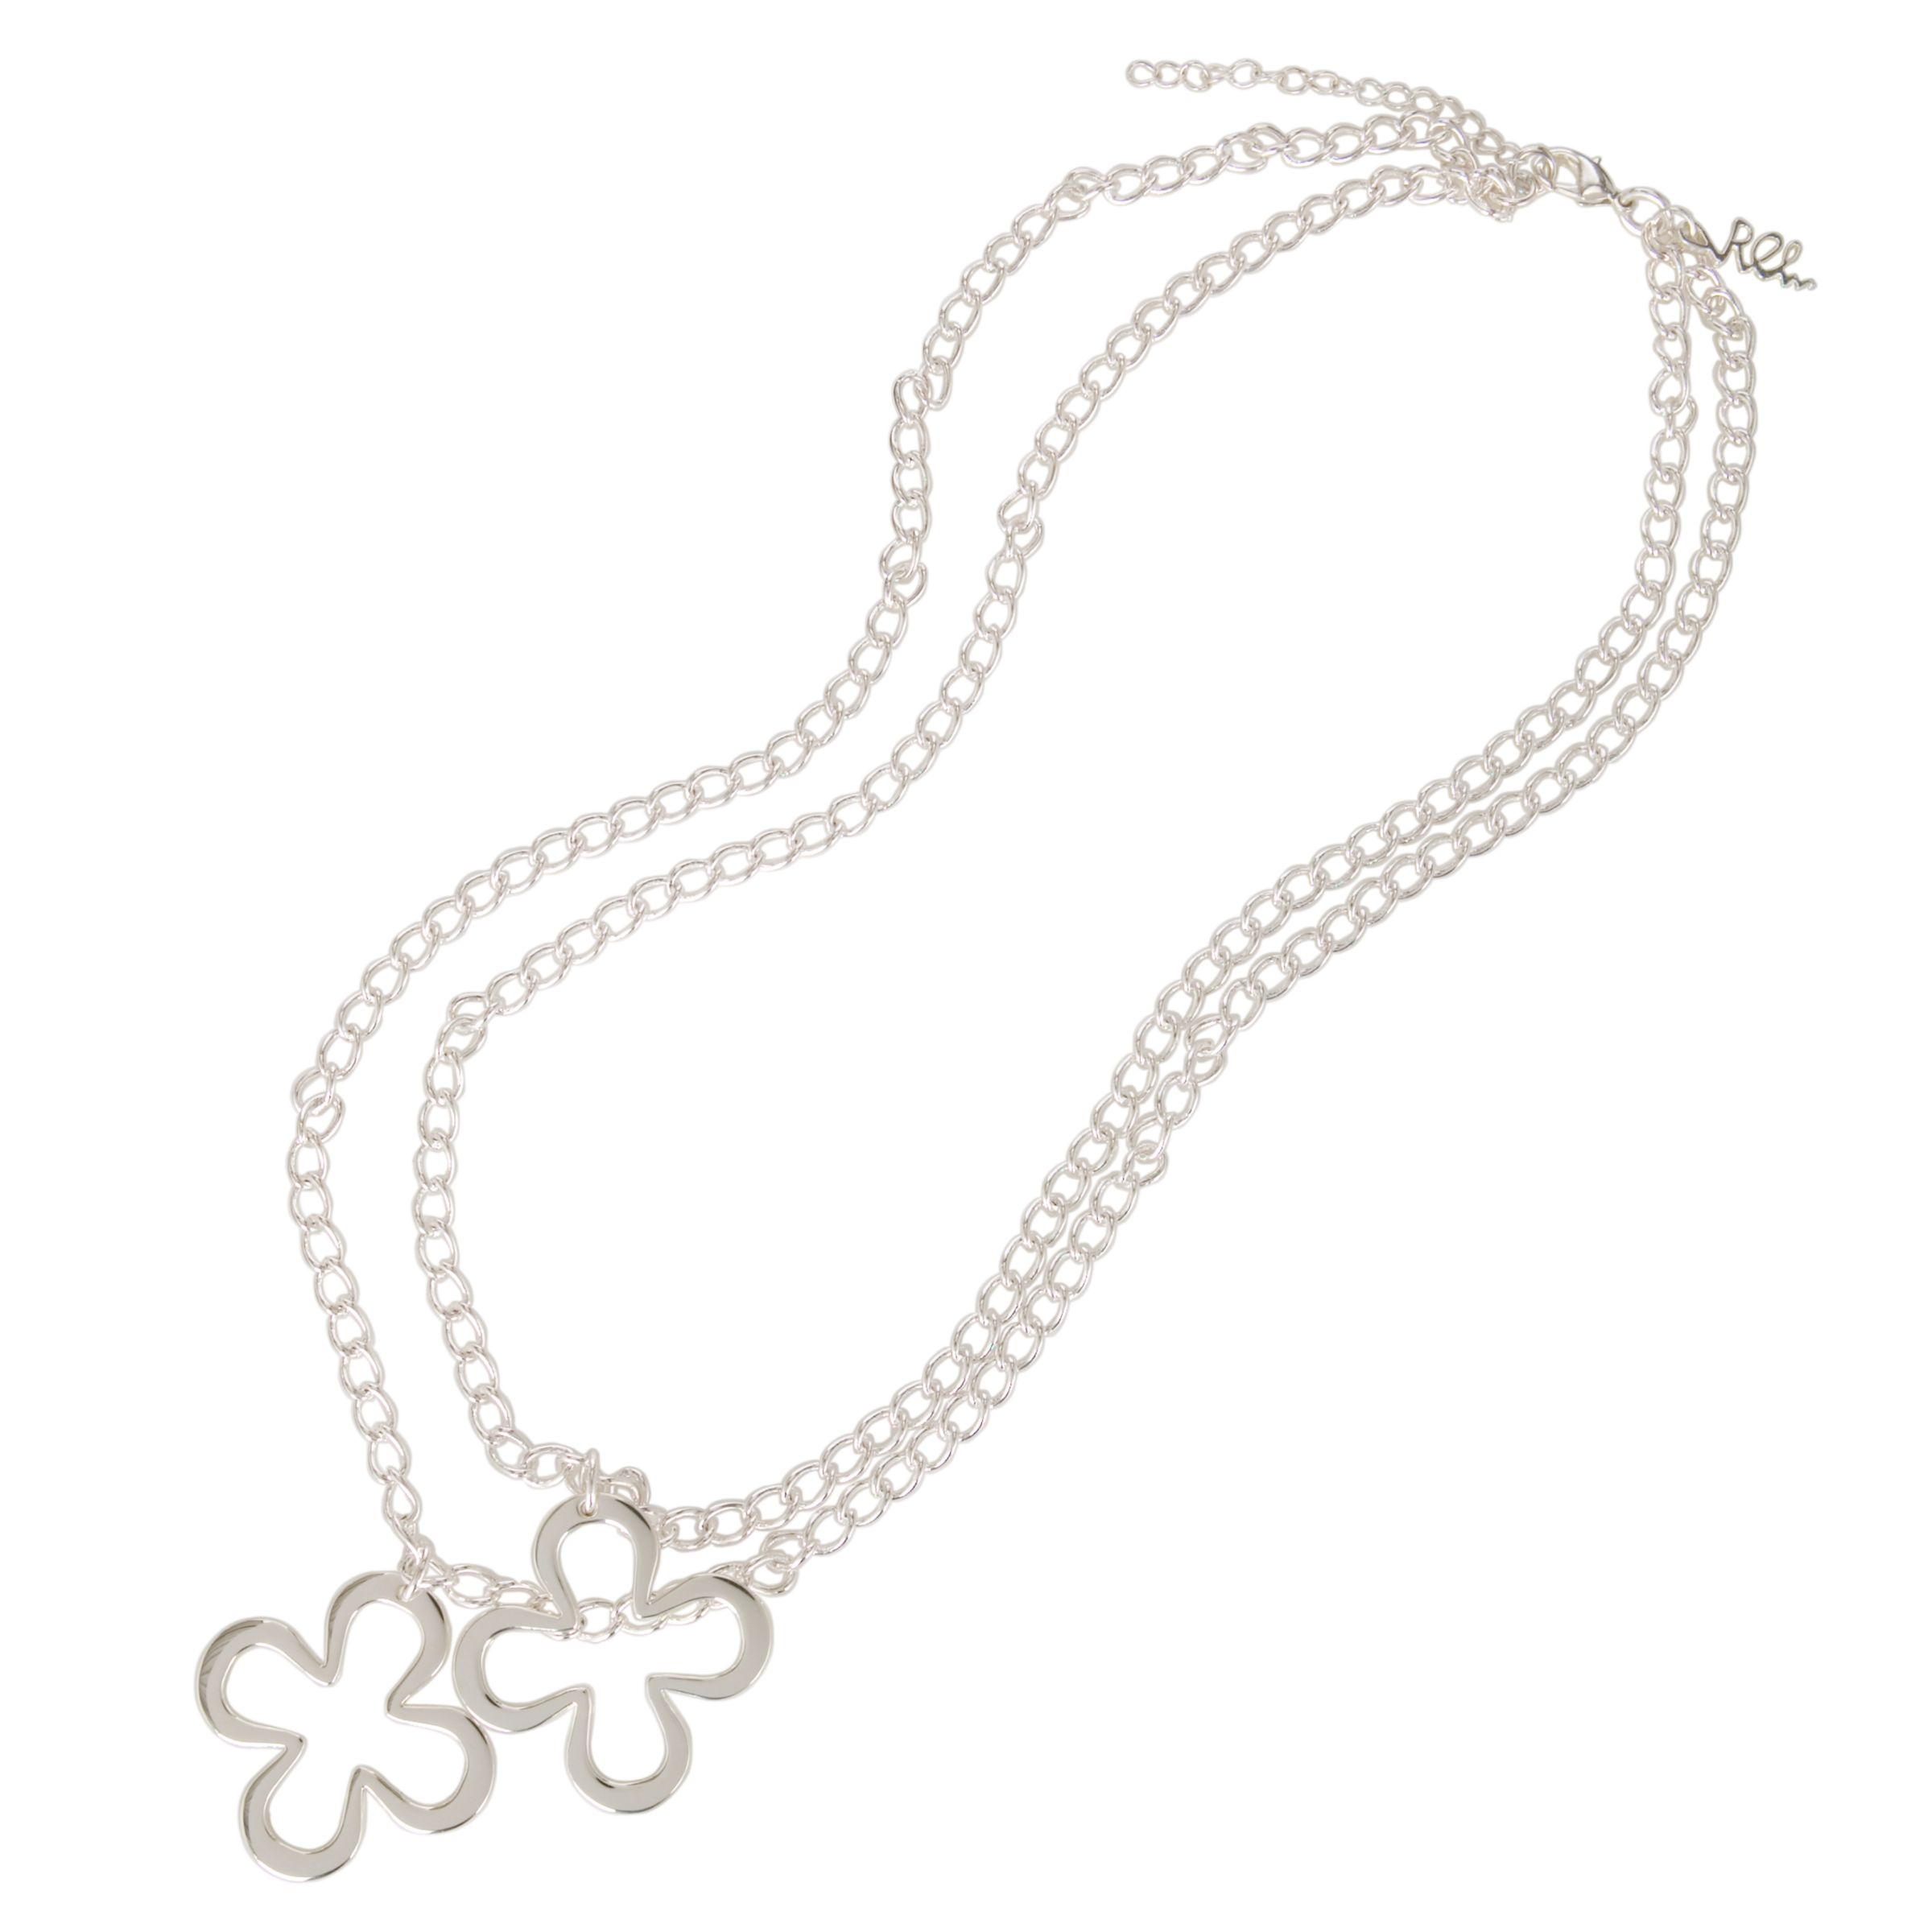 Renaissance Life Double Lucky Charm Necklace, Silver